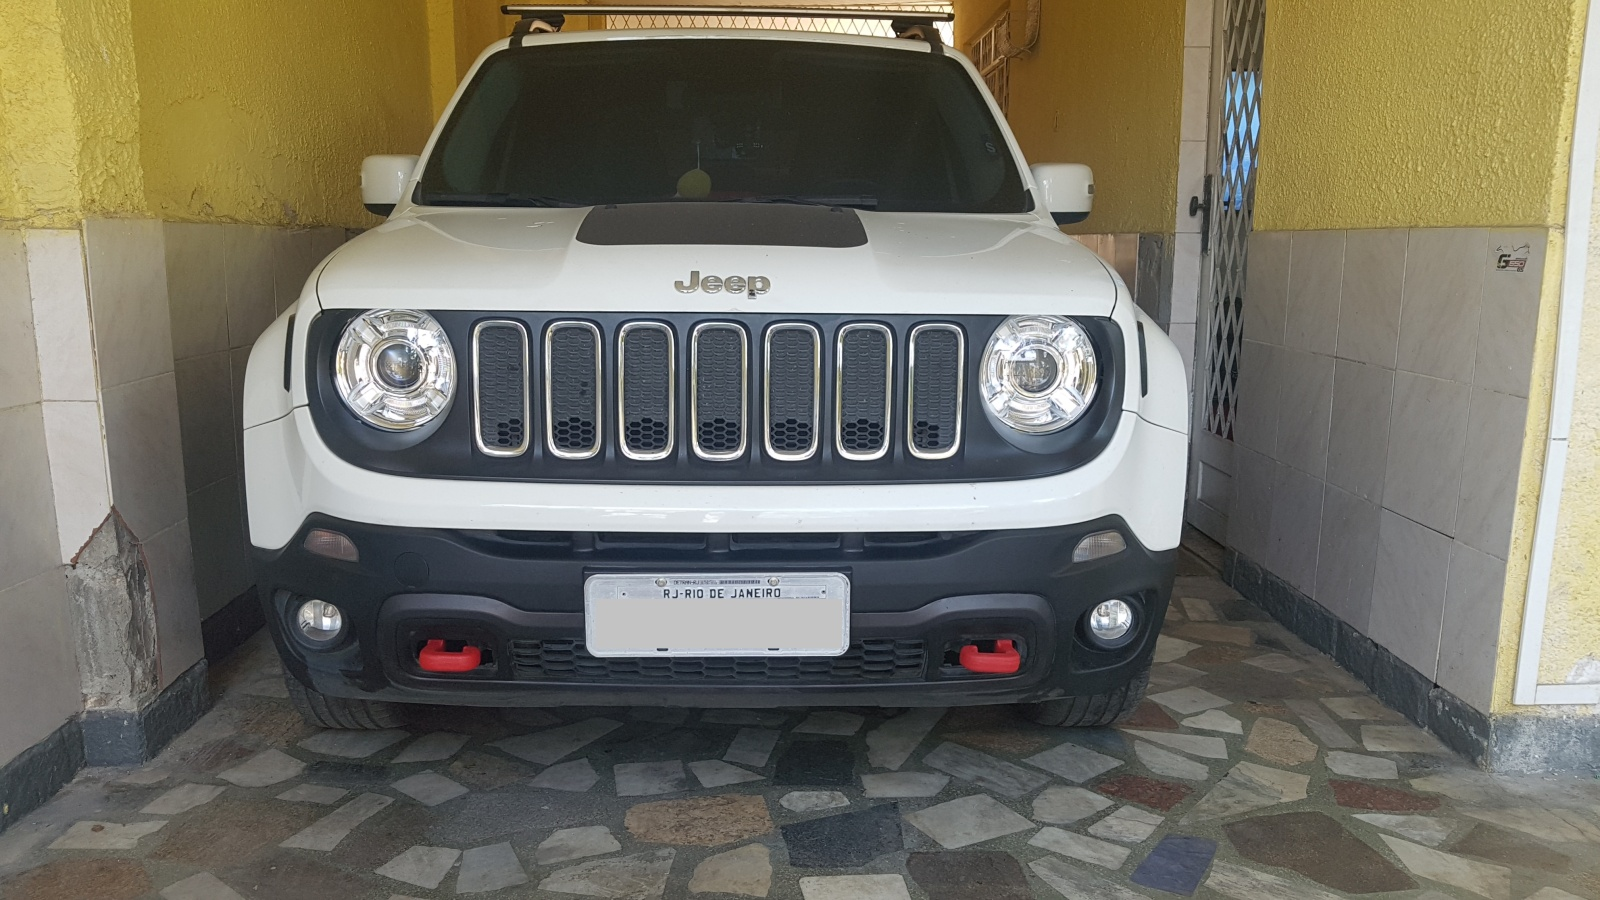 Ganchos do trailhawk no longitude 4x4 Ojqmuu